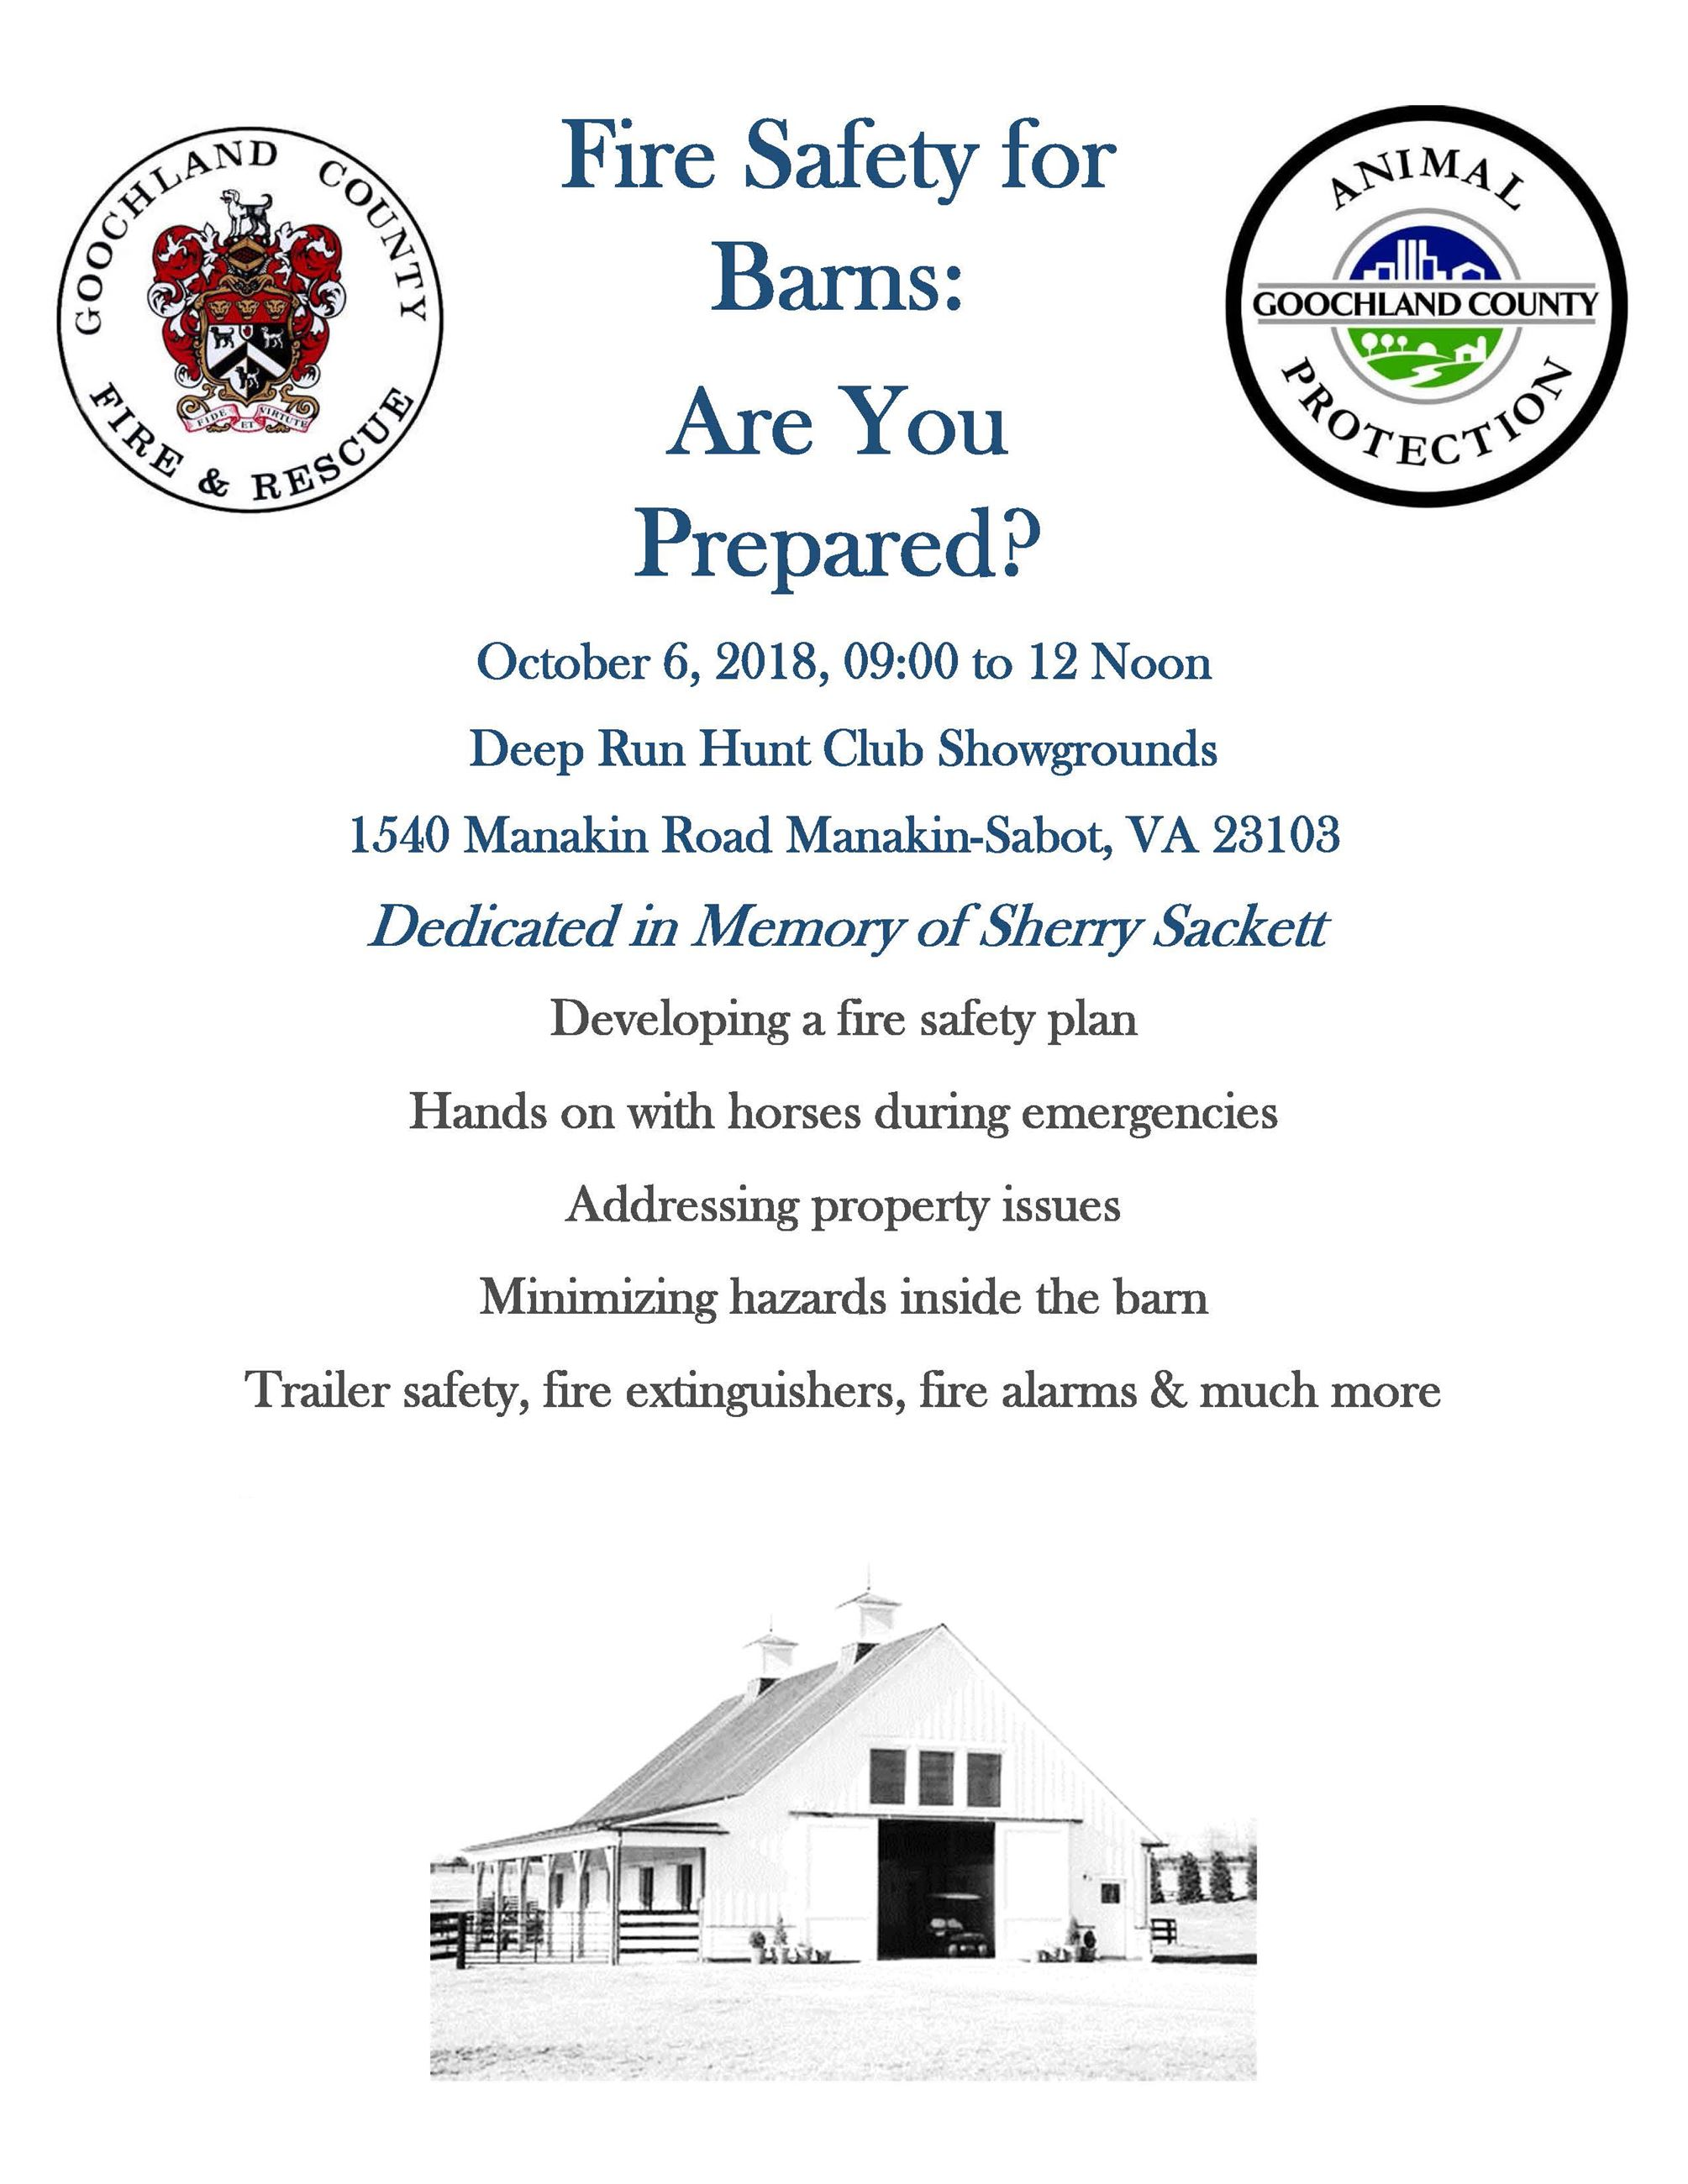 Fire Safety for Barns